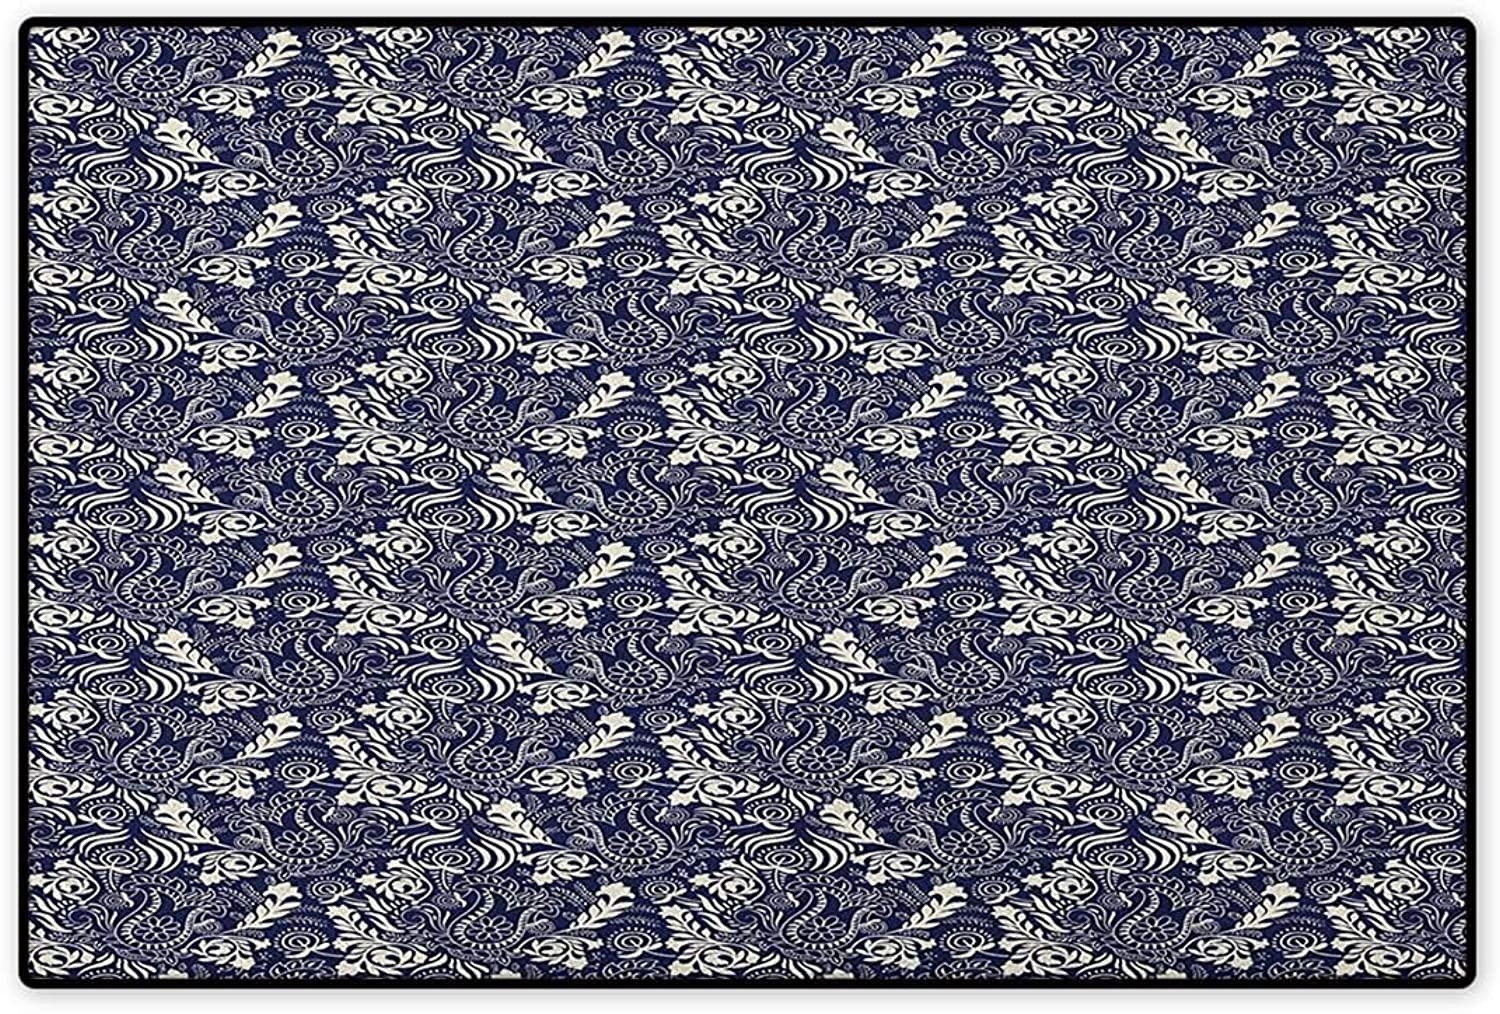 Persian,Door Mat Non Slip,Middle Eastern Inspirations with Curved Leaves and Flowers Blooming Nature,Floor Mat for Tub,Navy bluee Cream,Size,32 x48  (W80cm x L120cm)